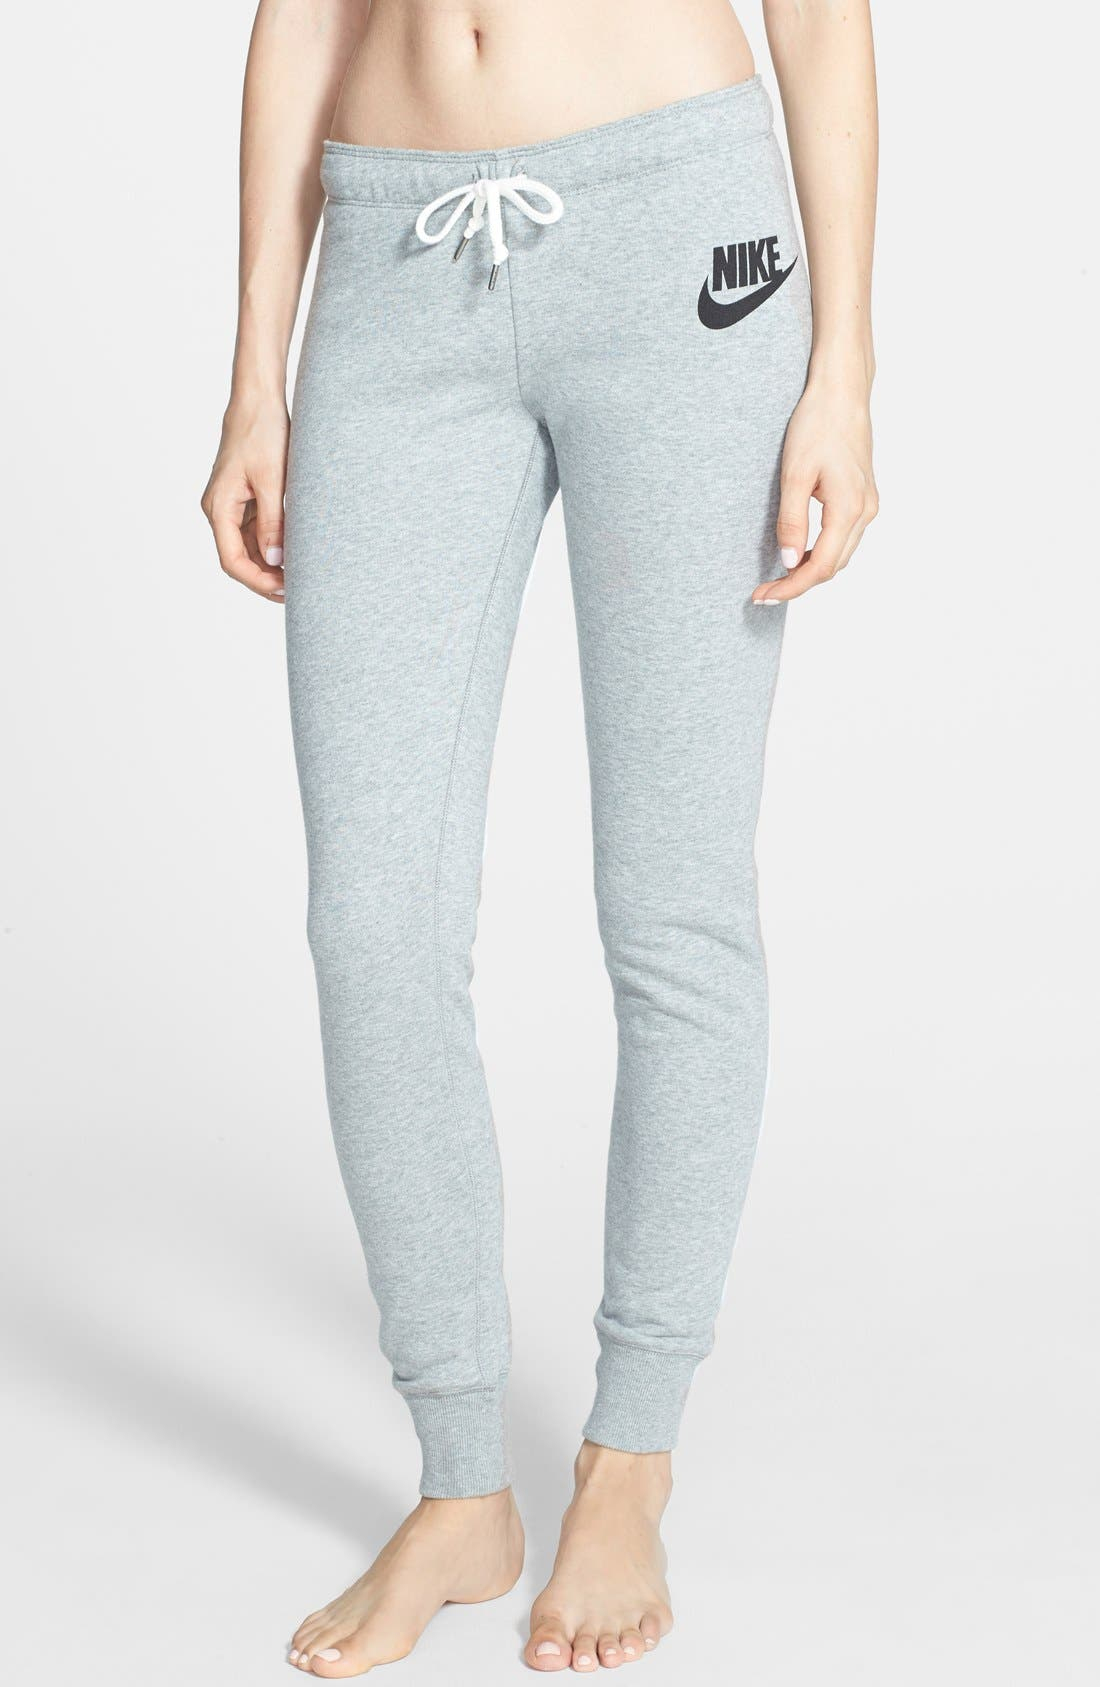 Main Image - Nike 'Rally' Tight French Terry Sweatpants